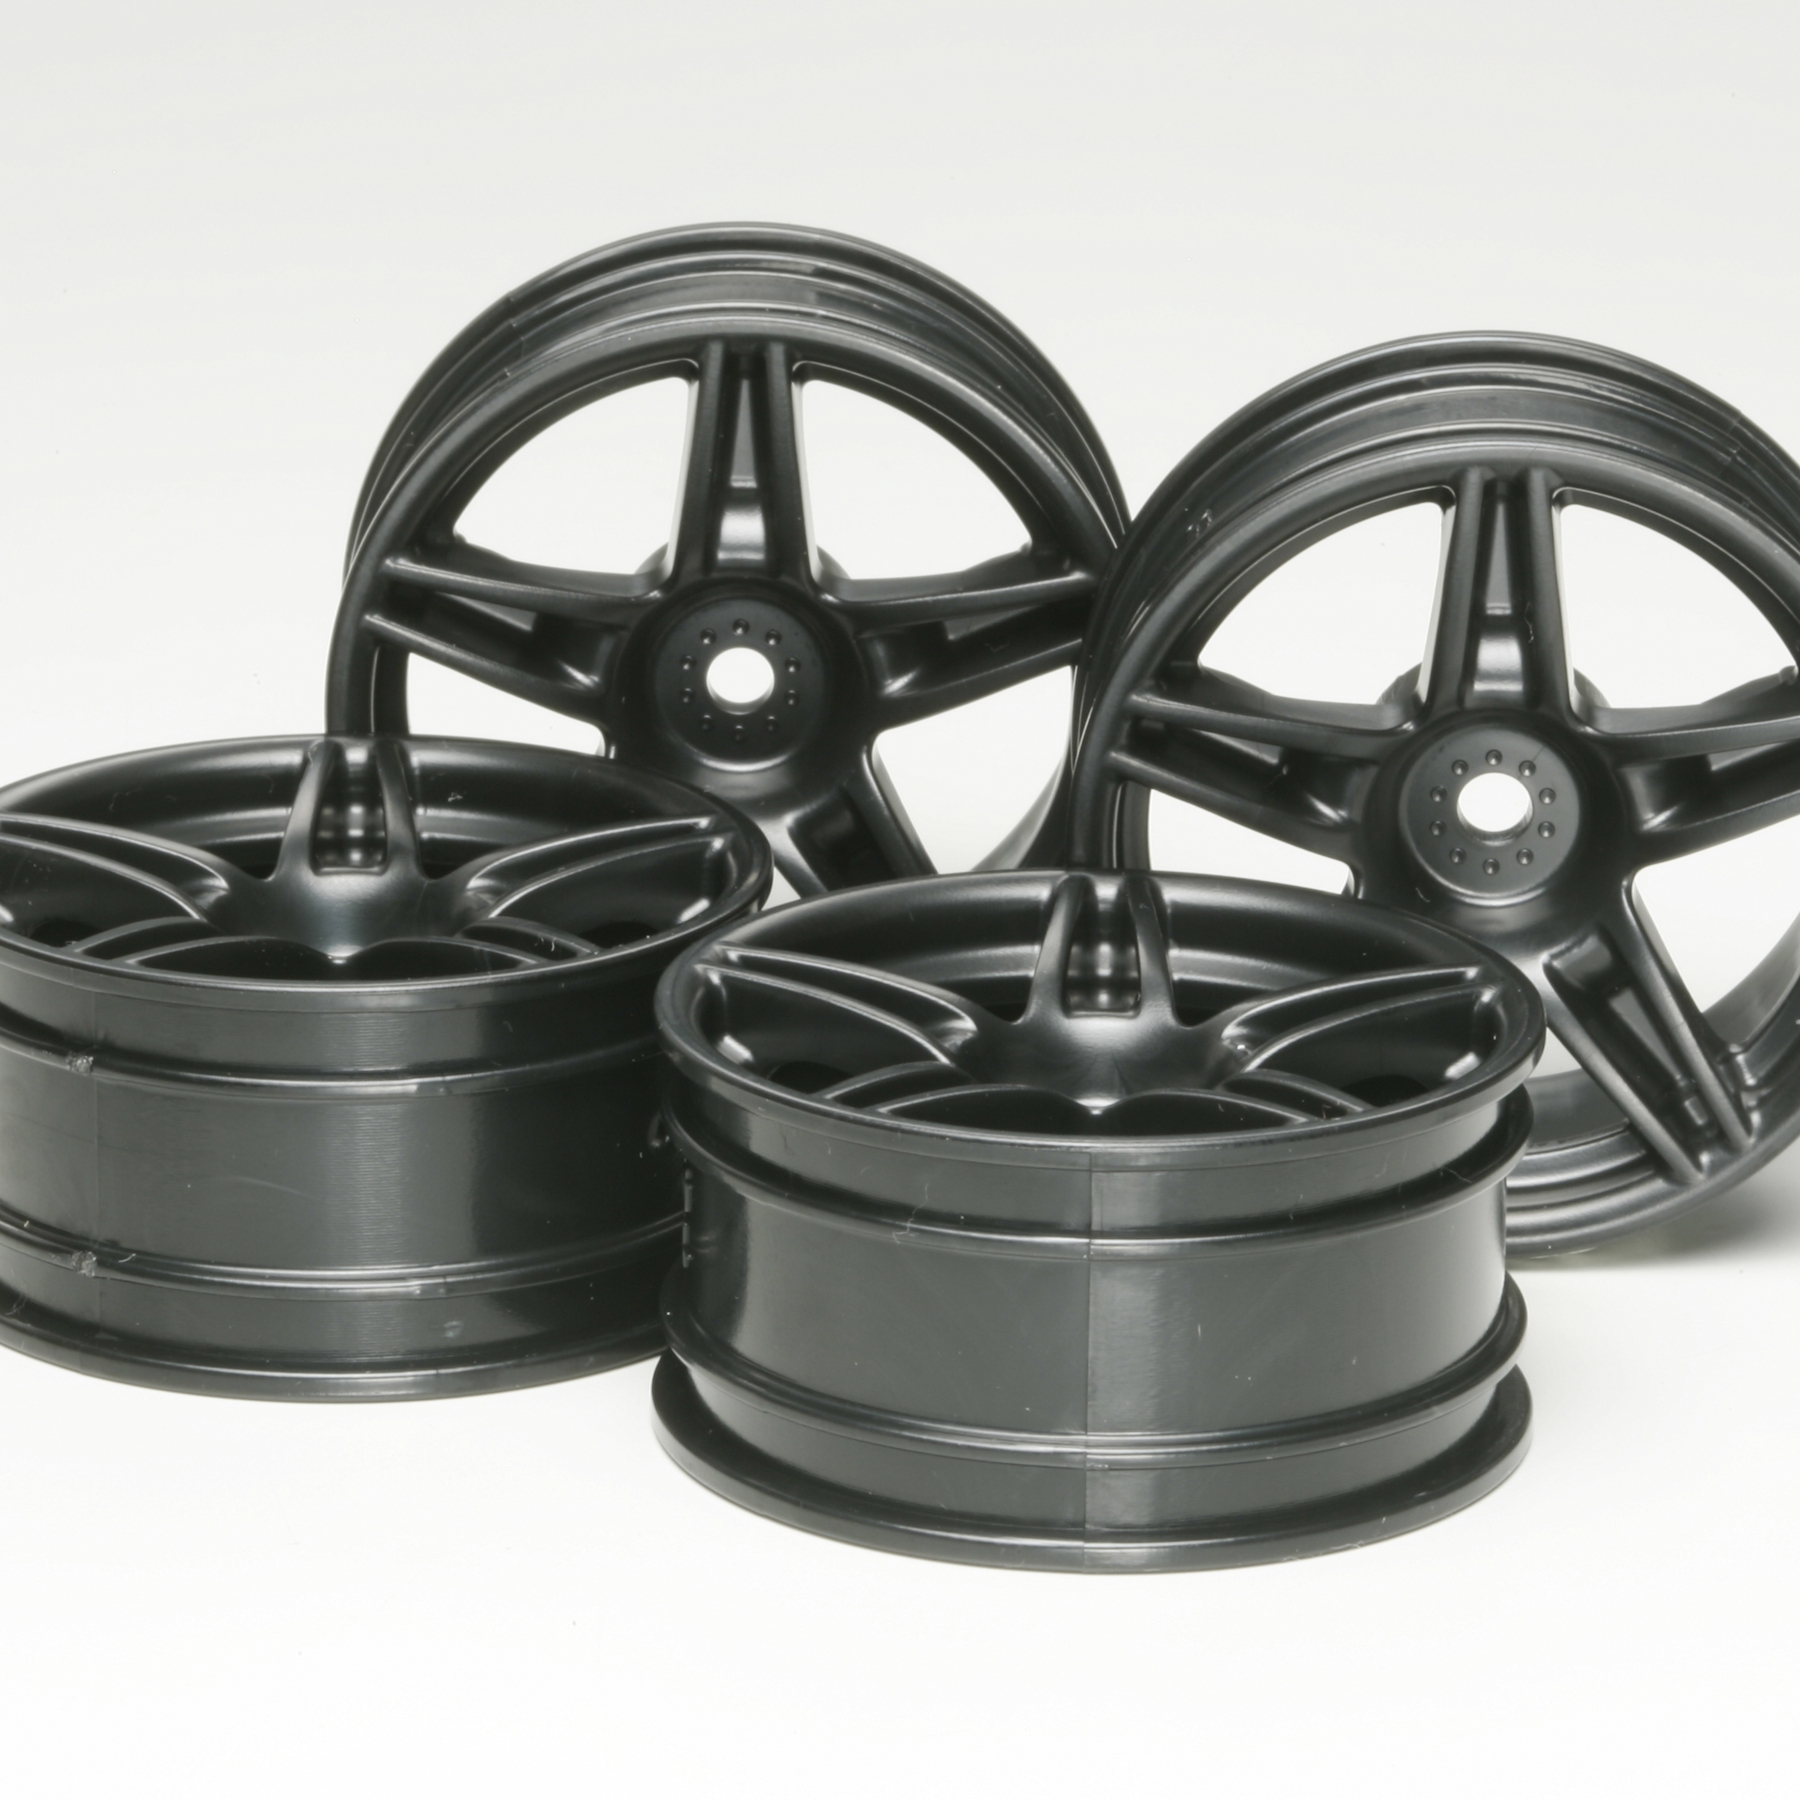 Rc Ferrari Fxx Wheels 4Pcs